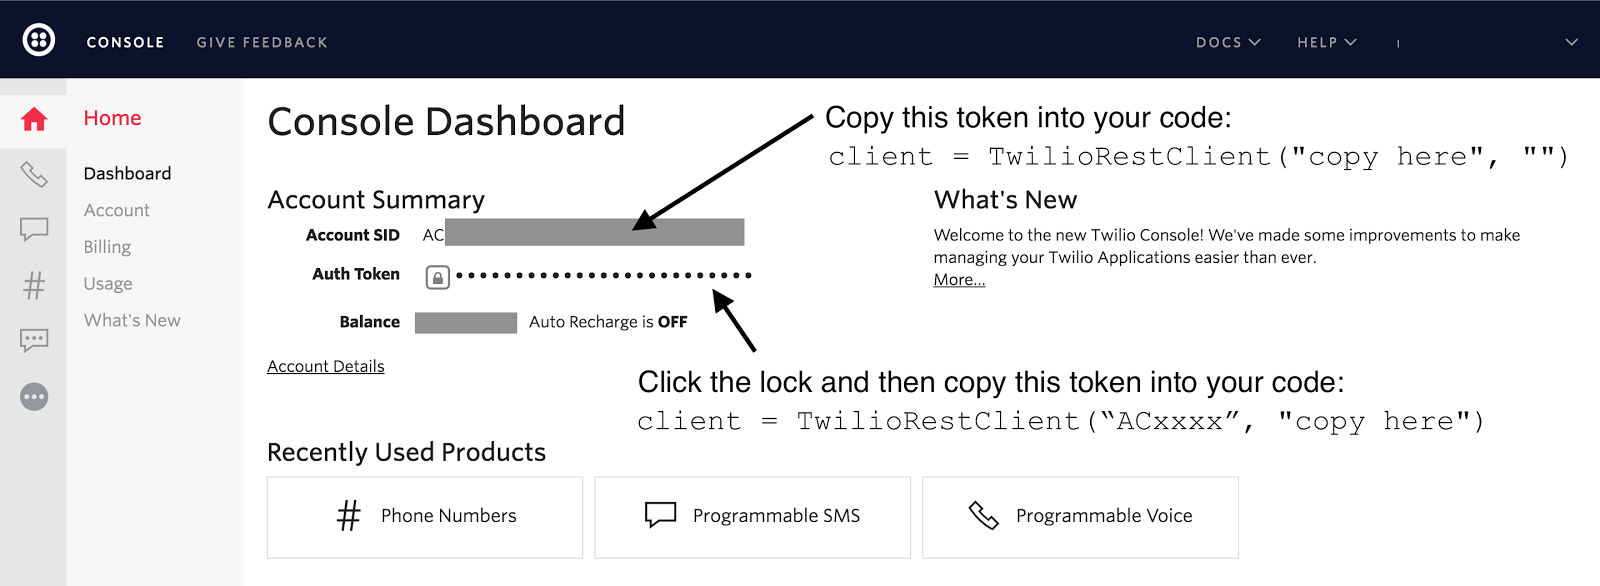 Obtain the Account SID and Auth Token from the Twilio Console.